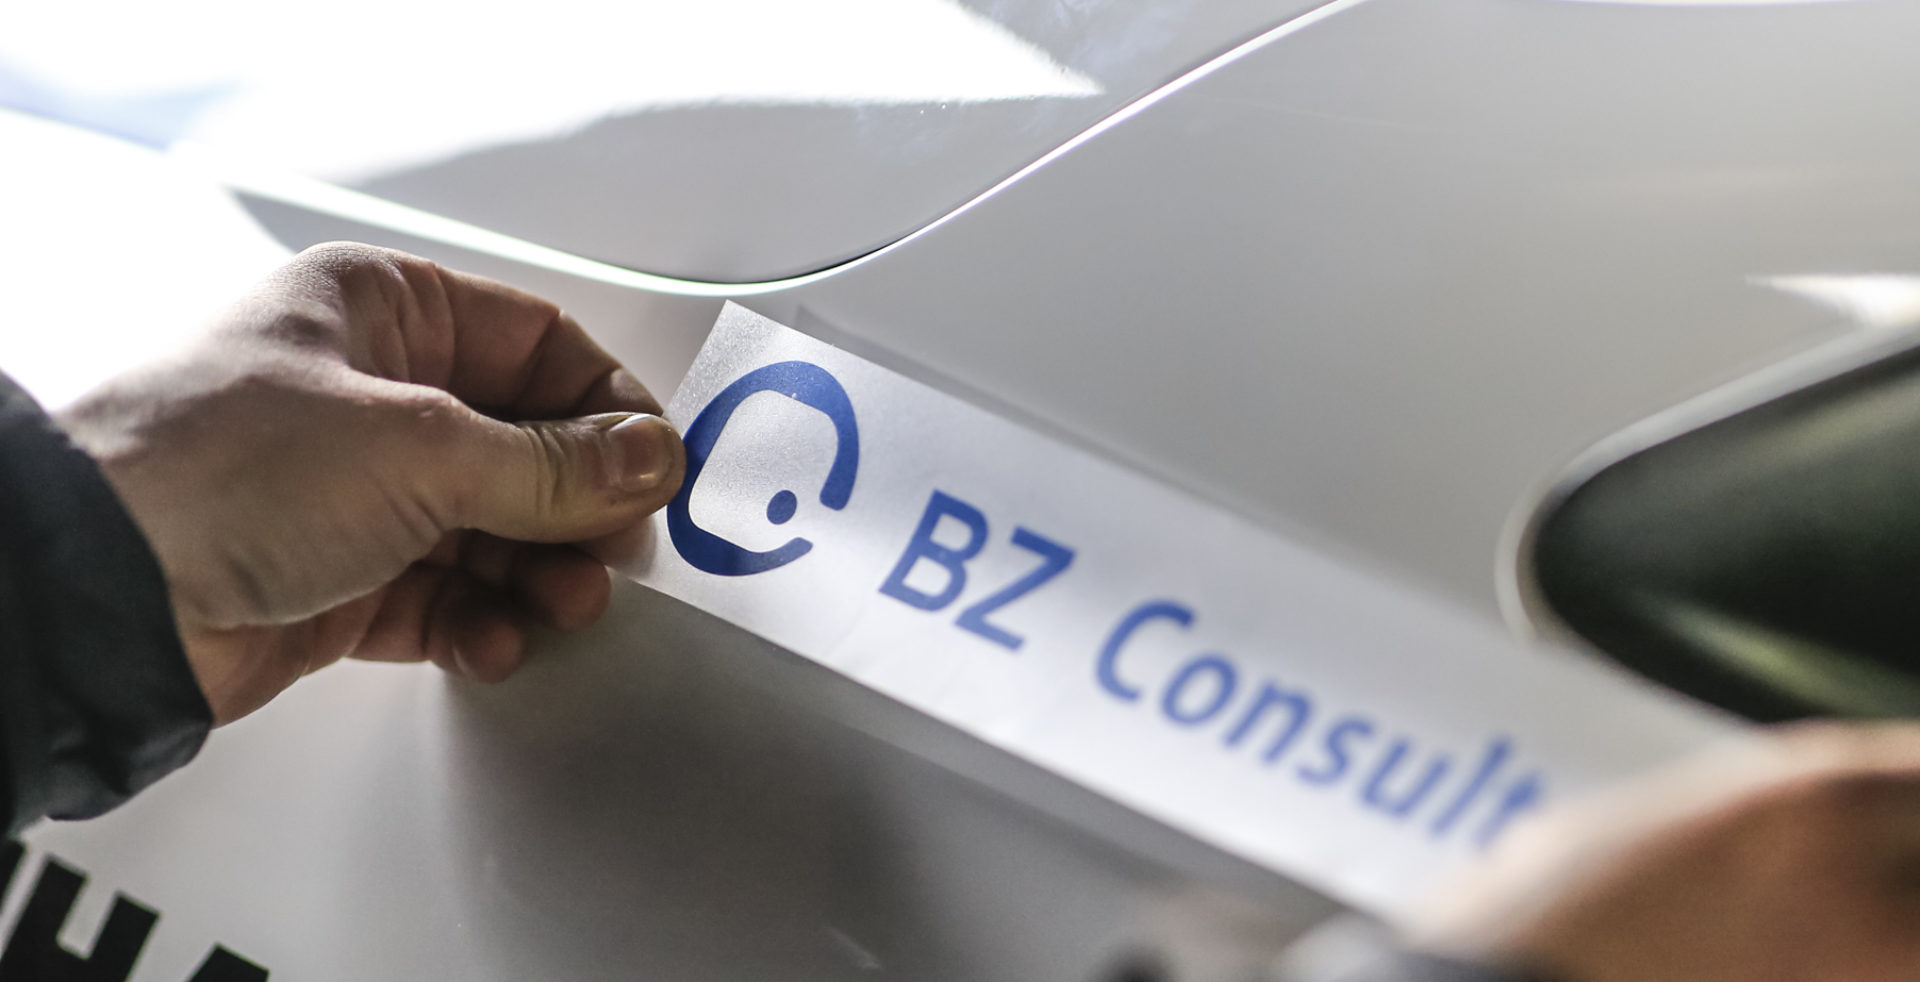 bzconsult